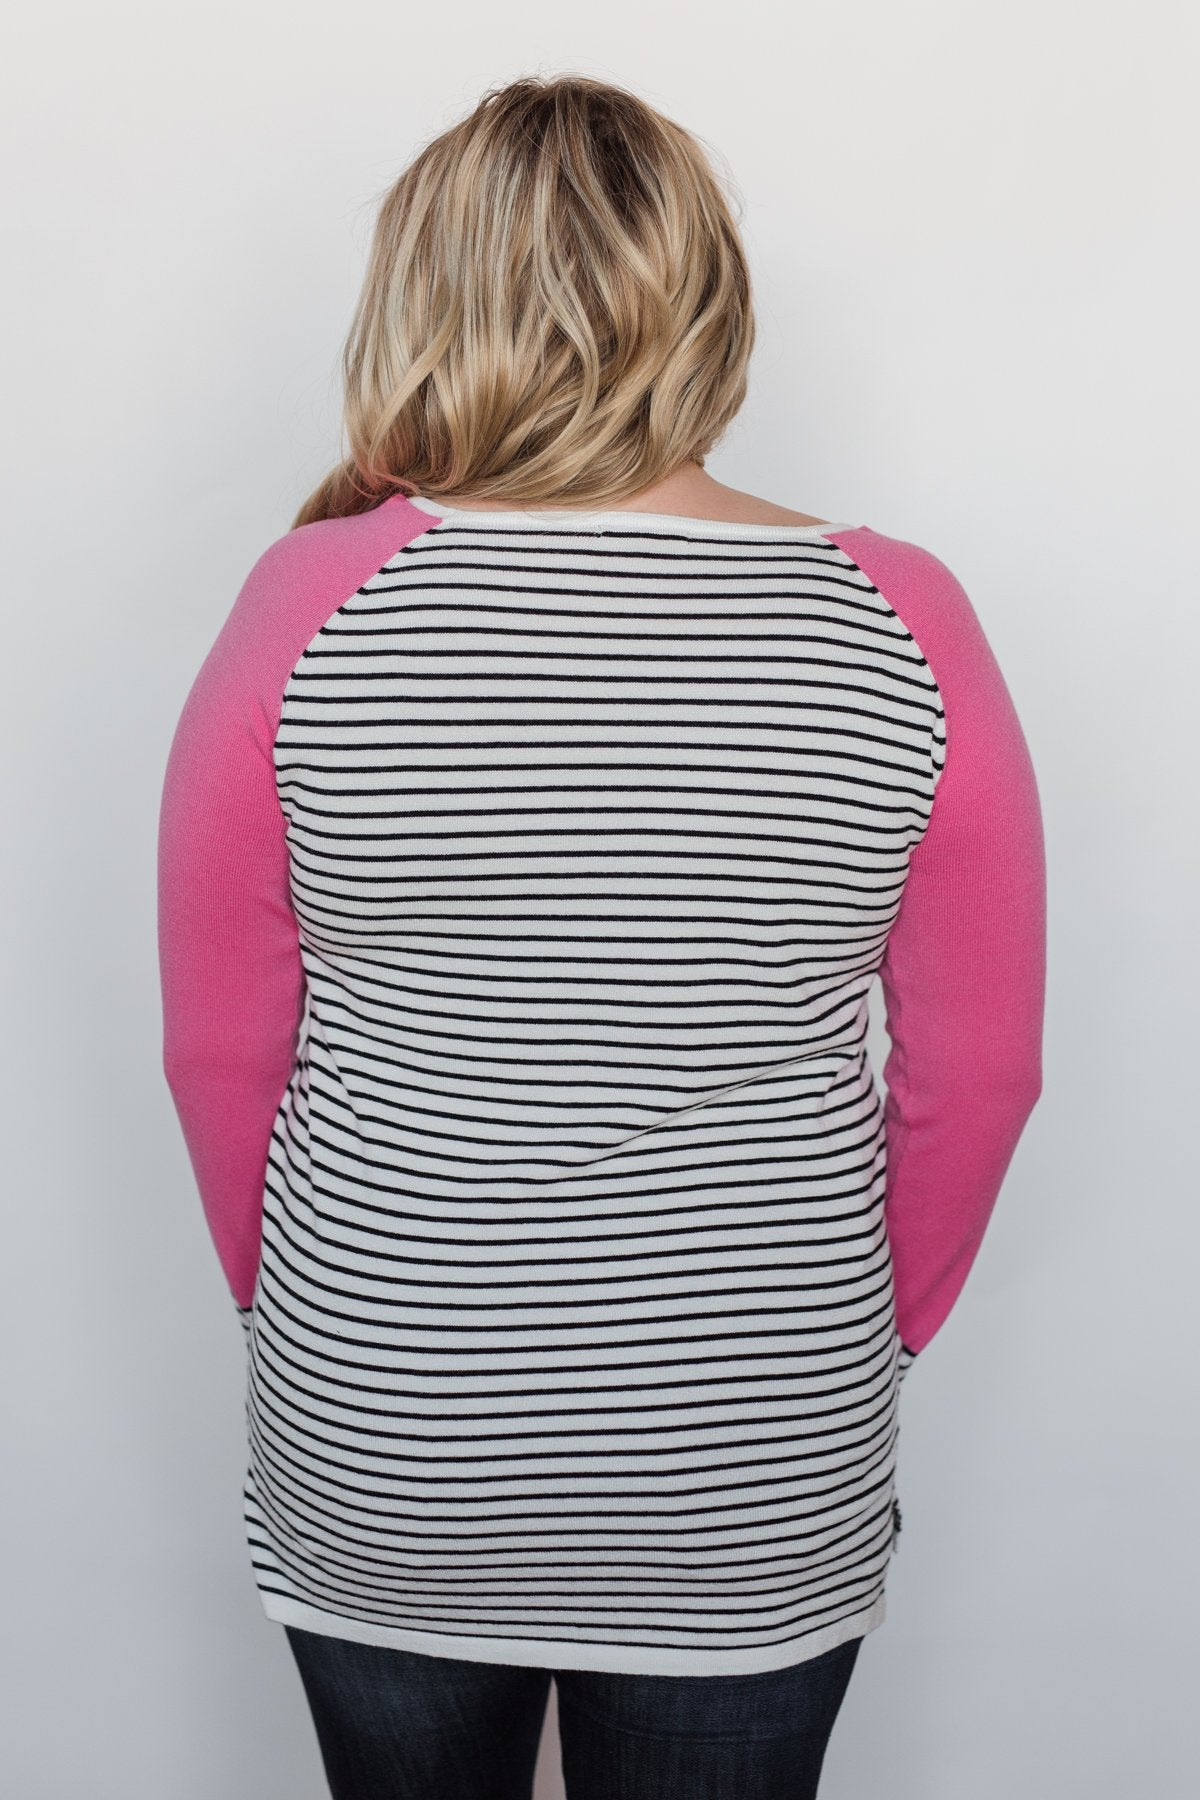 Pretty in Pink Striped Sweater - Bright Pink